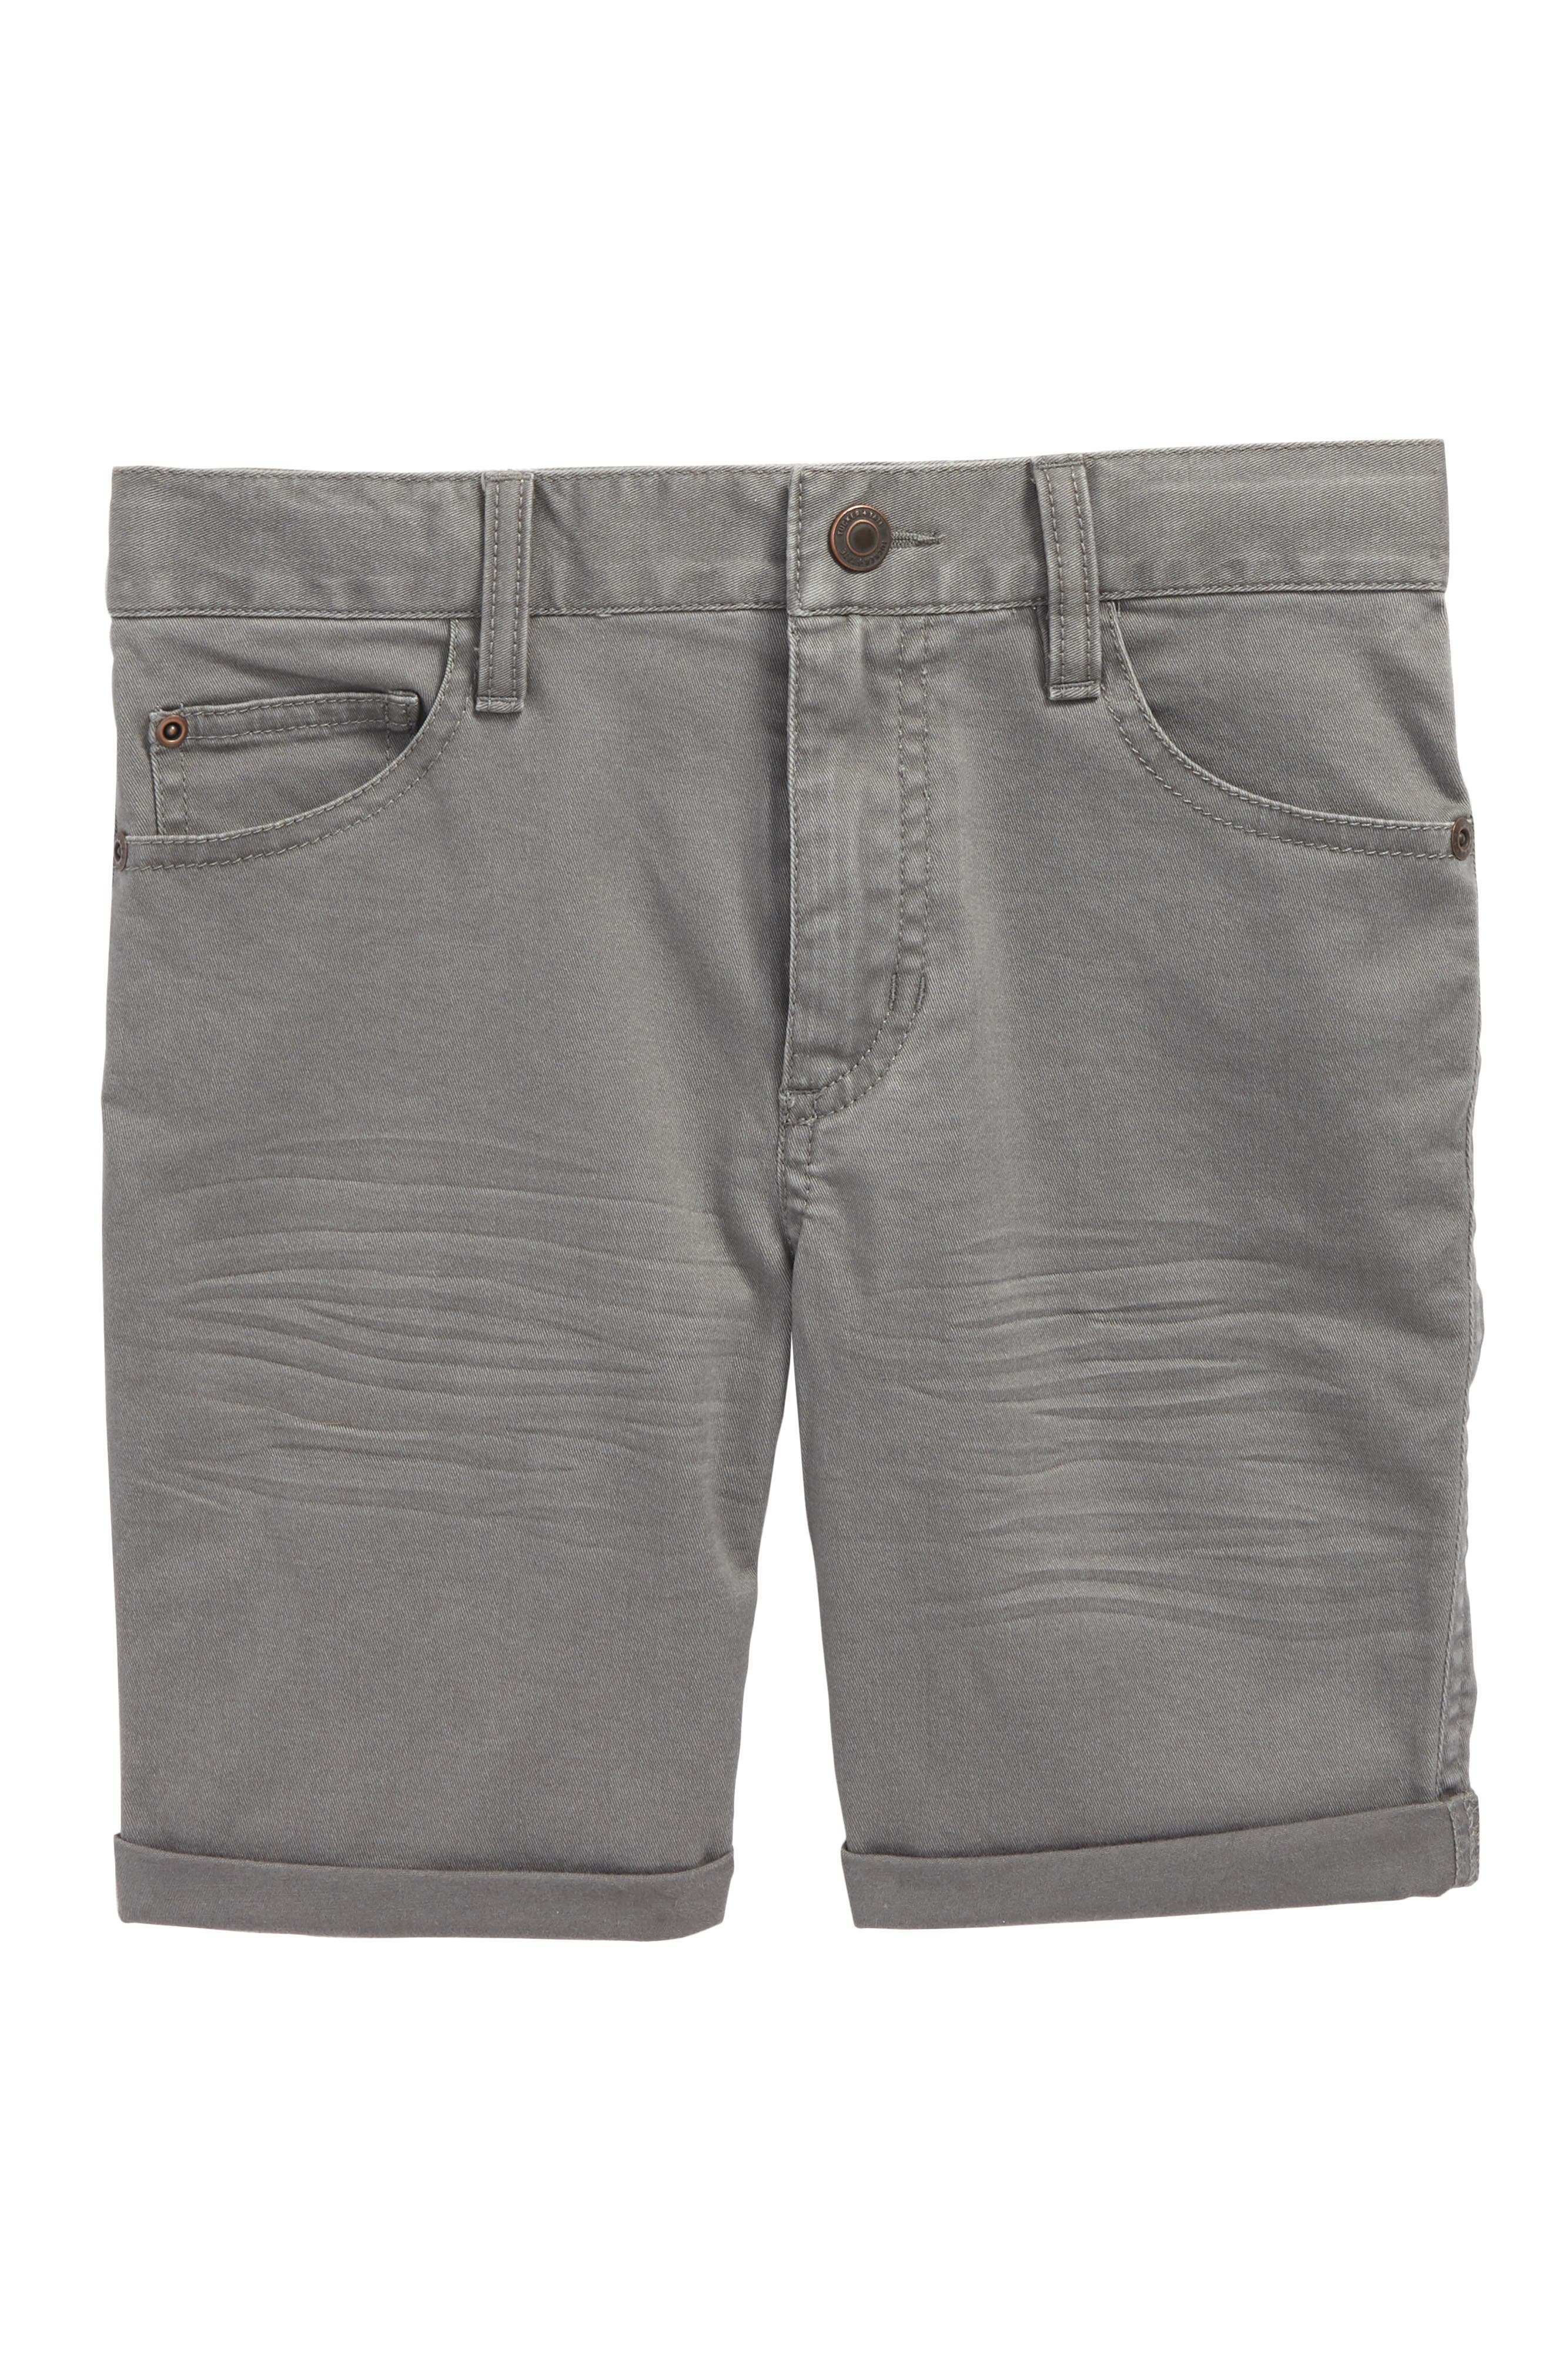 Stretch Twill Shorts,                         Main,                         color, 021